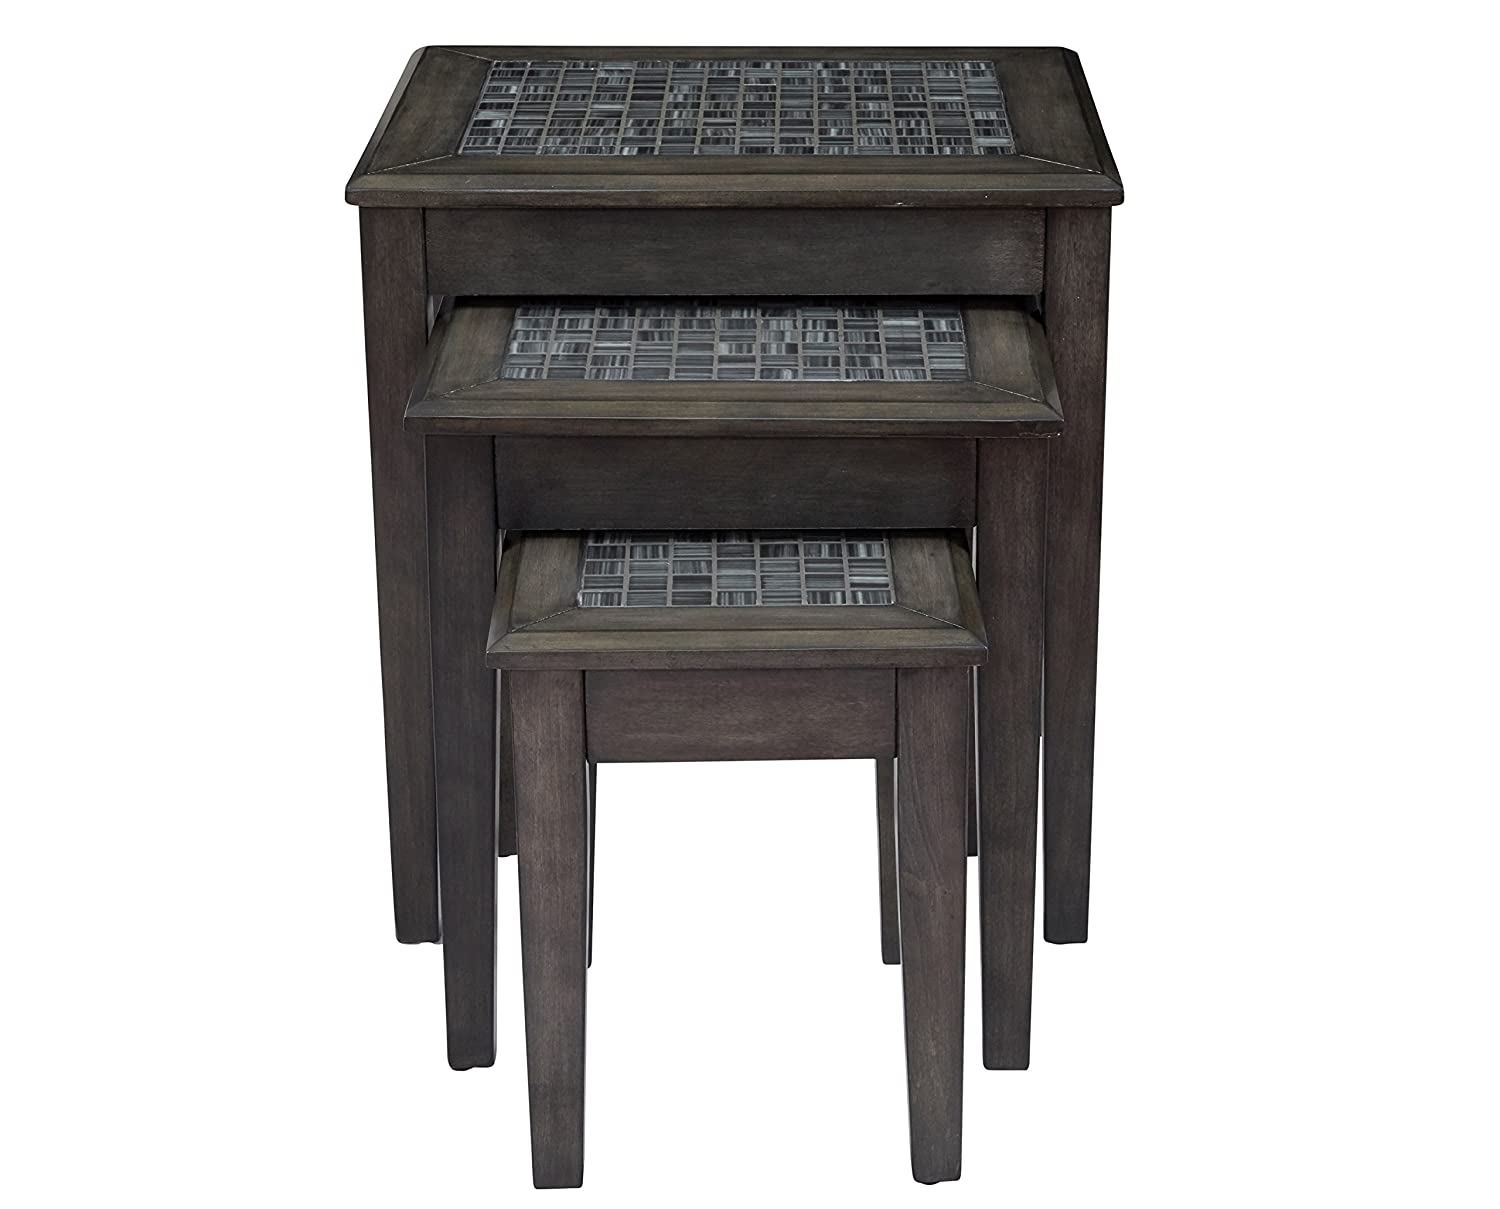 "Jofran 1798-7 Grey Mosaic Nesting Tables, Large 21"" WX 17"" 22"" H, Medium 16.25"" 15.25"" 19"" H, Small 12"" W X 14"" D X 15"" H, Dark Finish, (Set of 3)"